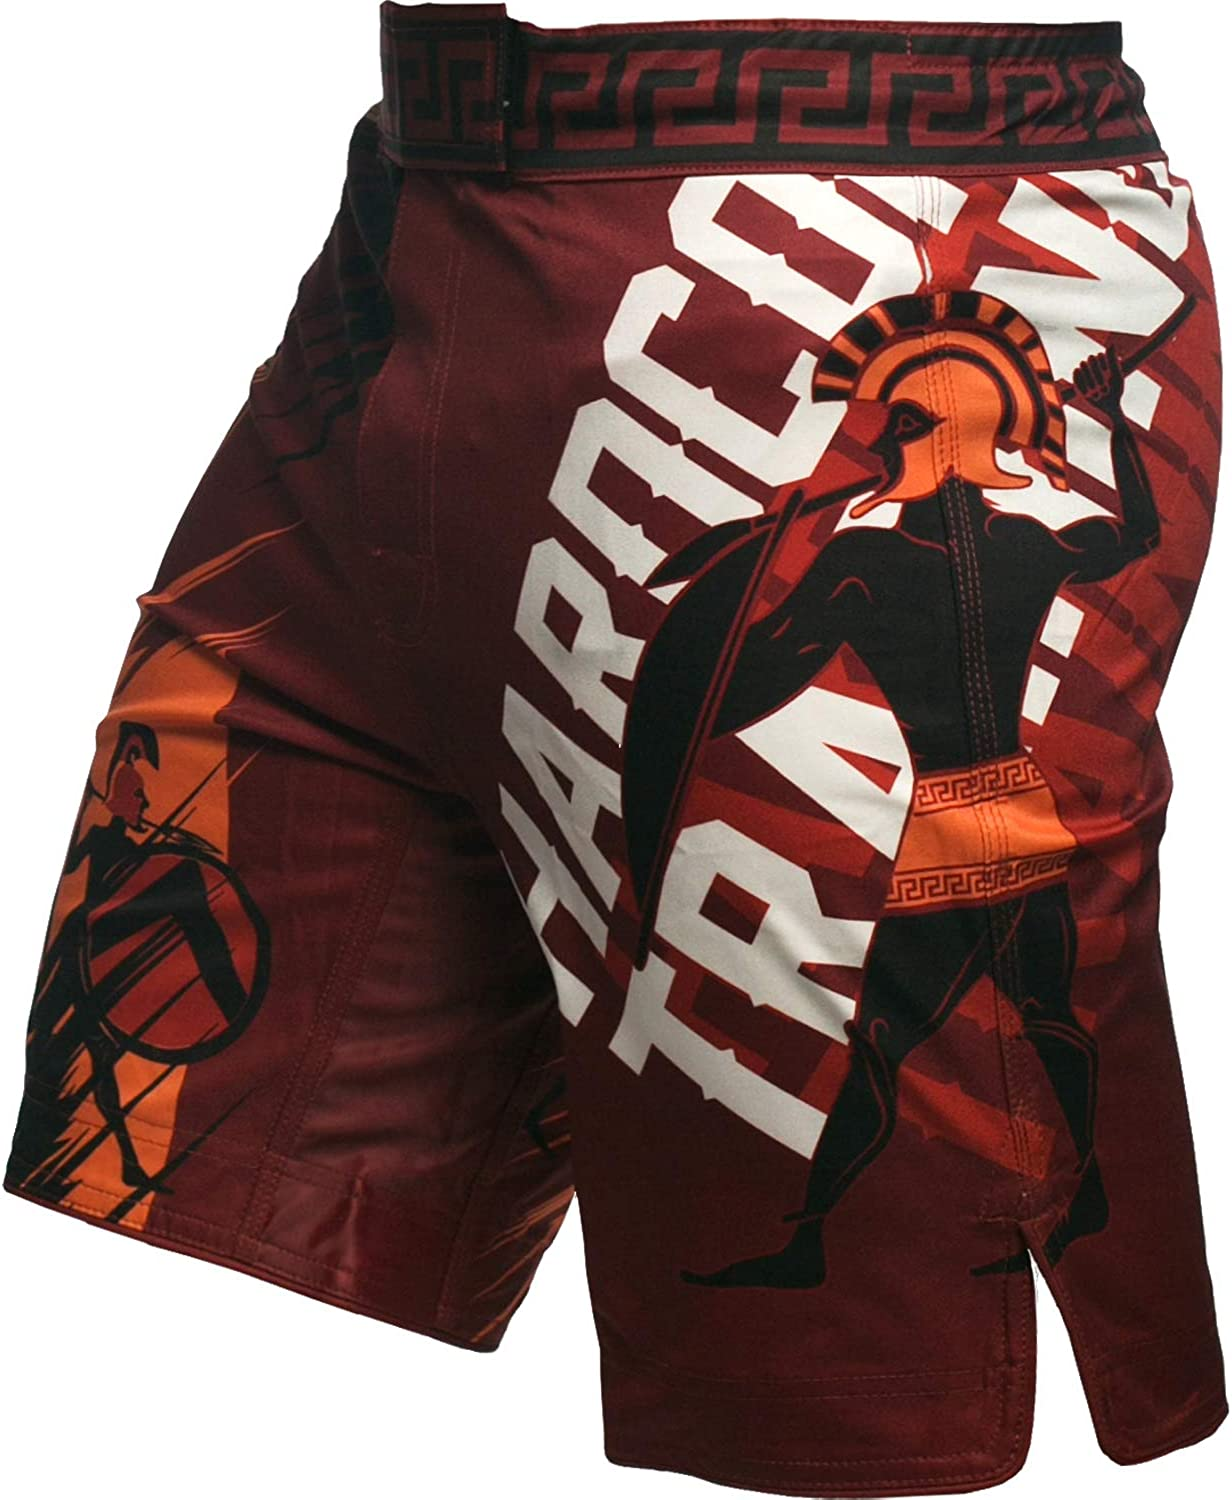 Hardcore Training Sparta Red Fight Comba Boxing Shorts Special price Regular discount Men's MMA